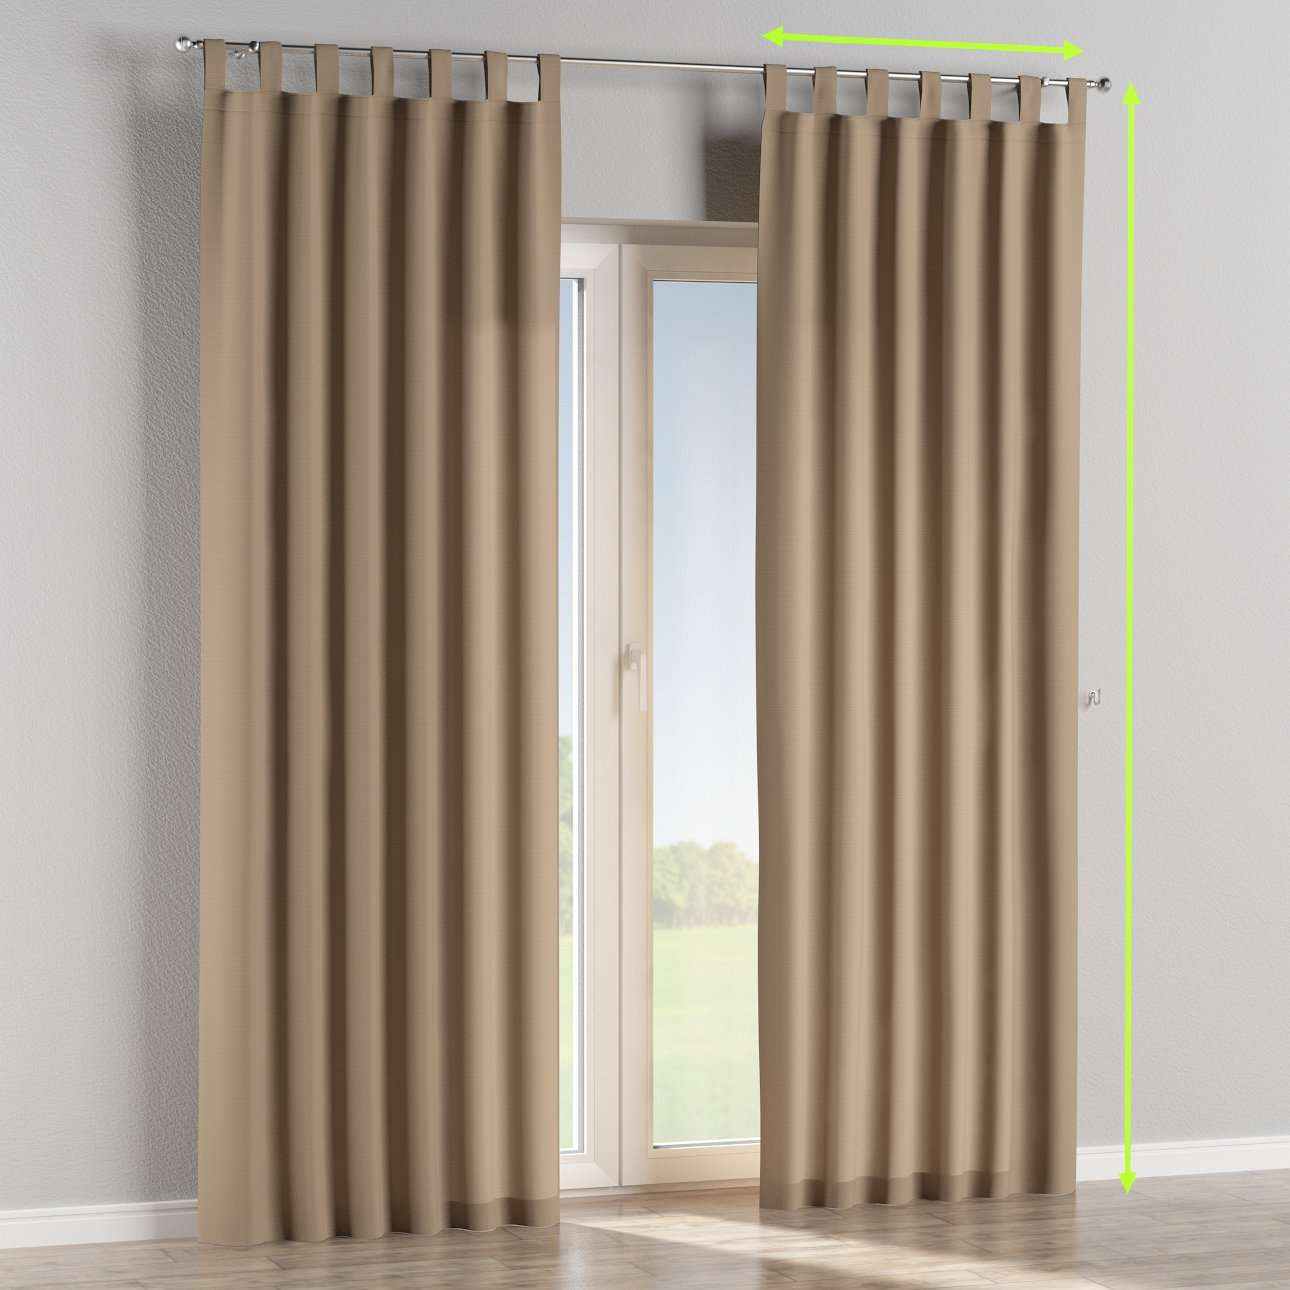 Tab top lined curtains in collection Cotton Panama, fabric: 702-28